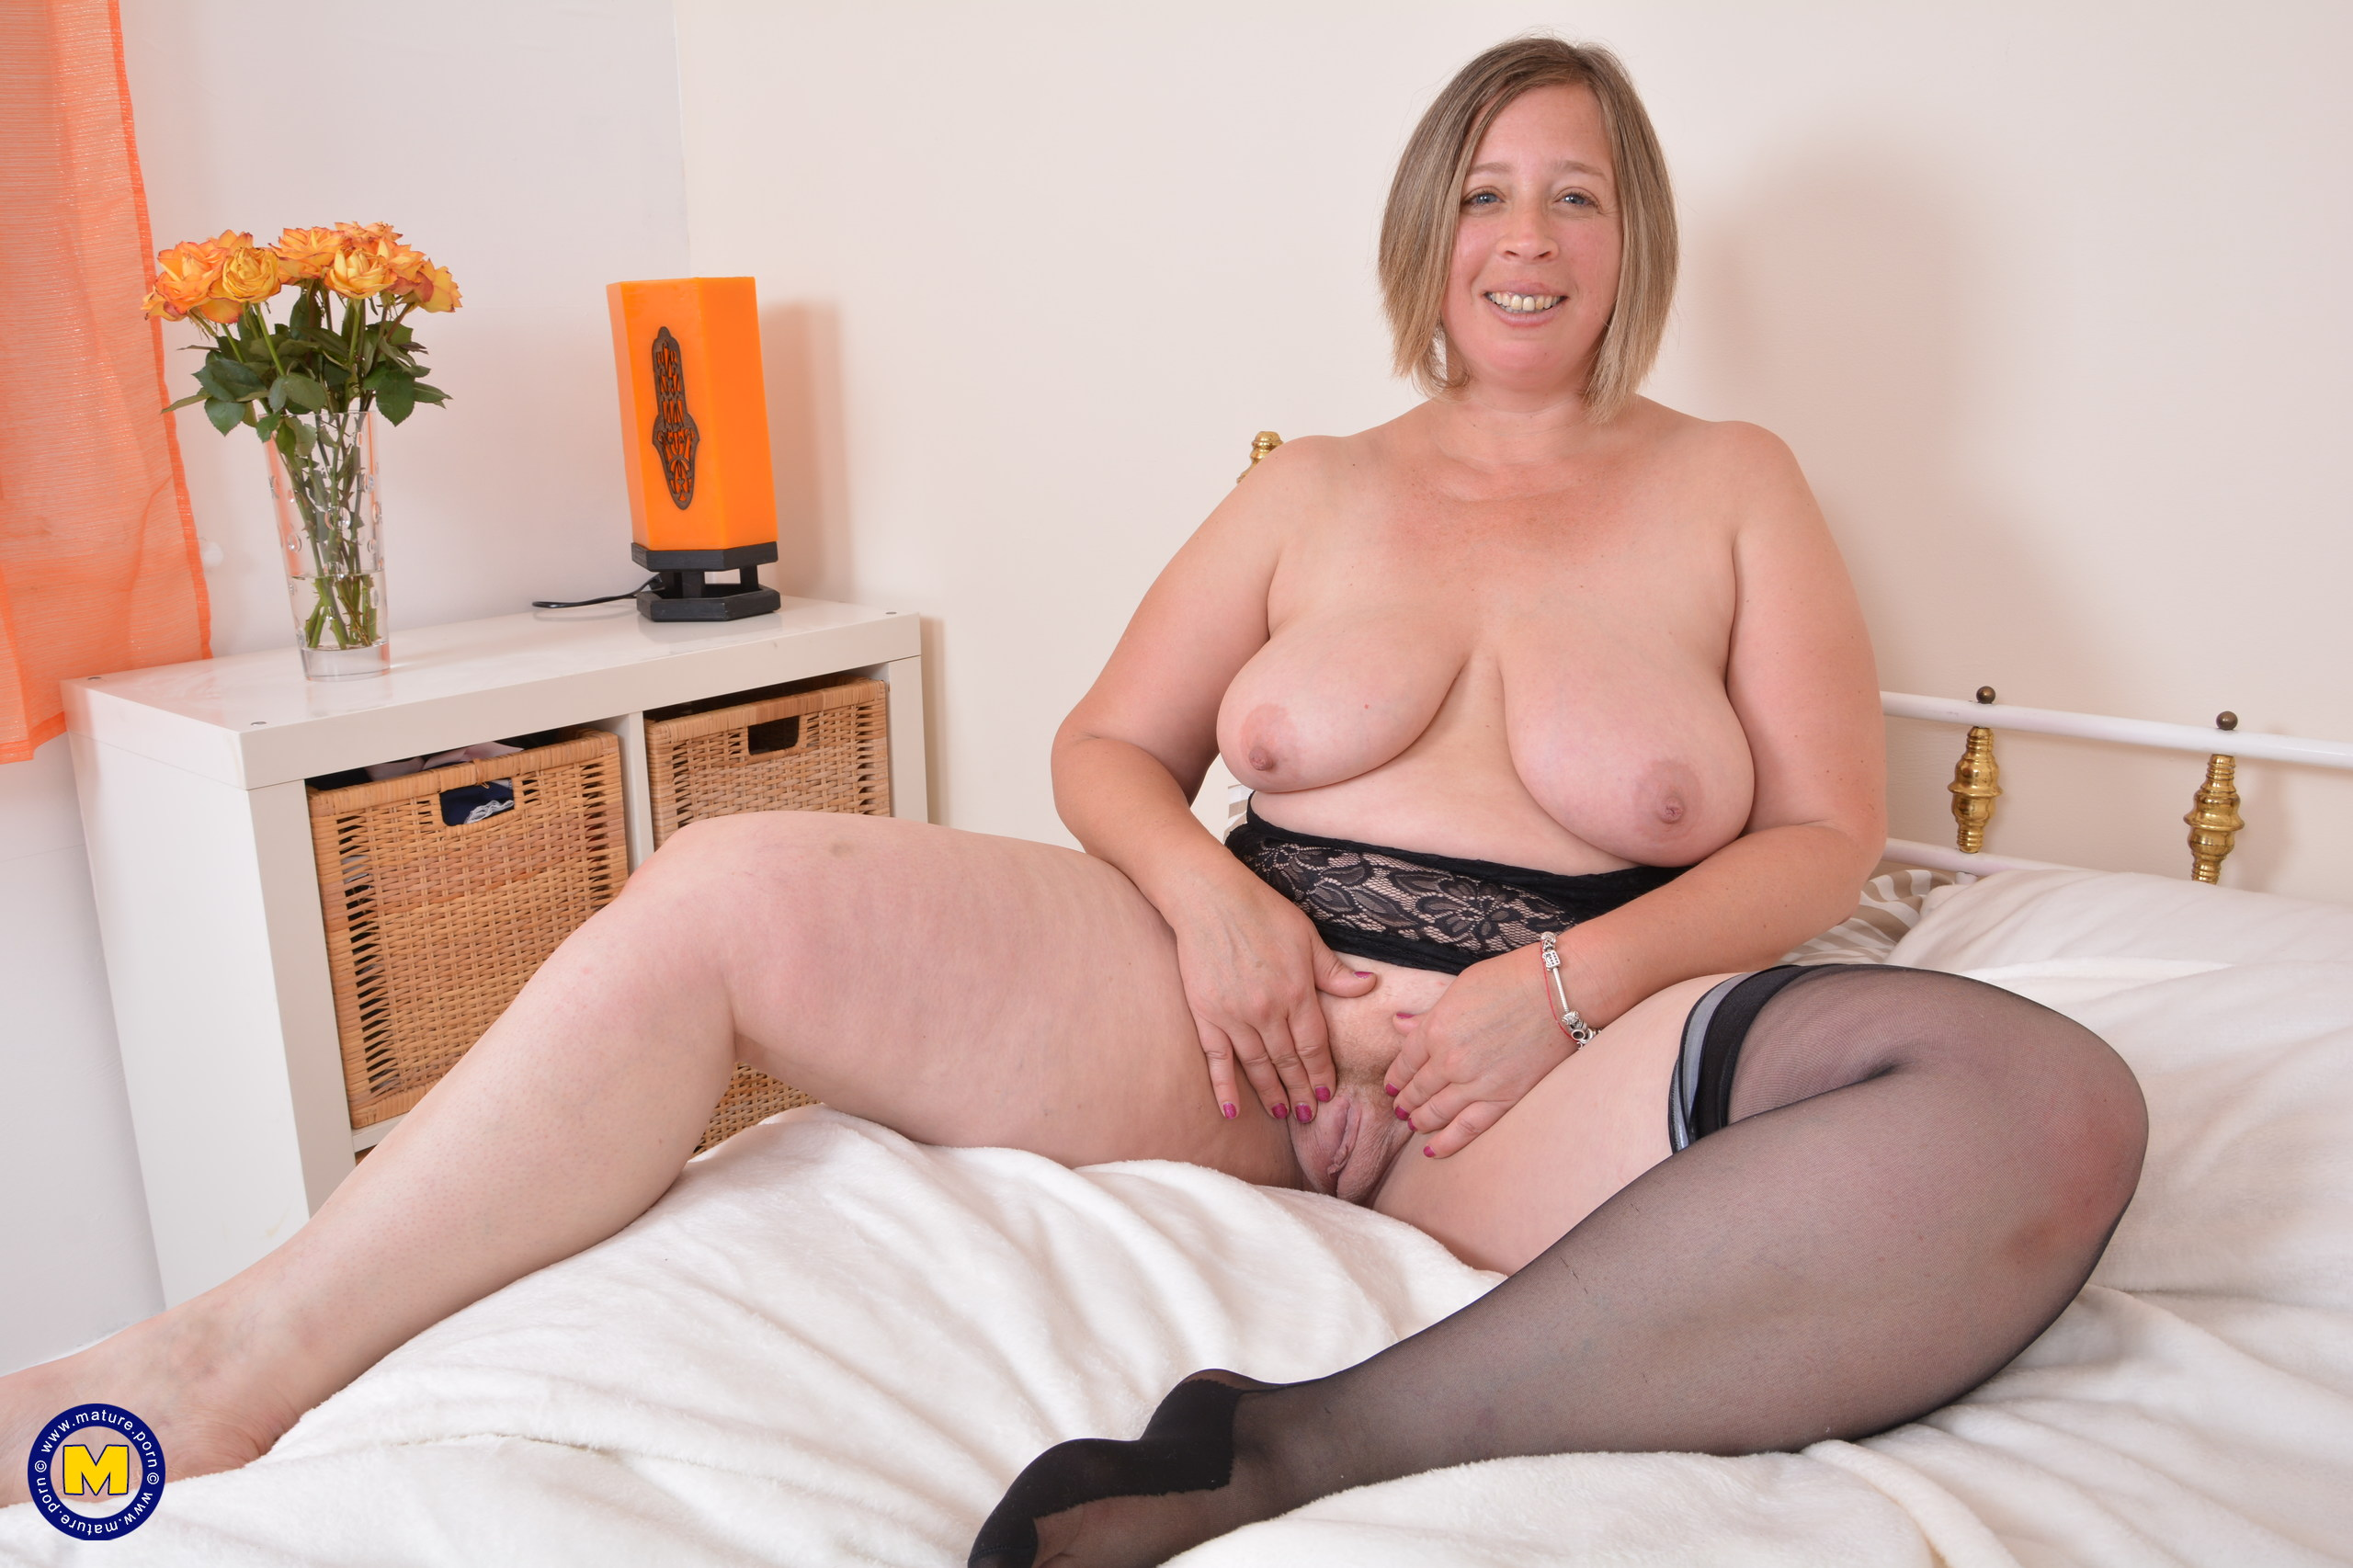 Mature British Housewife Porn